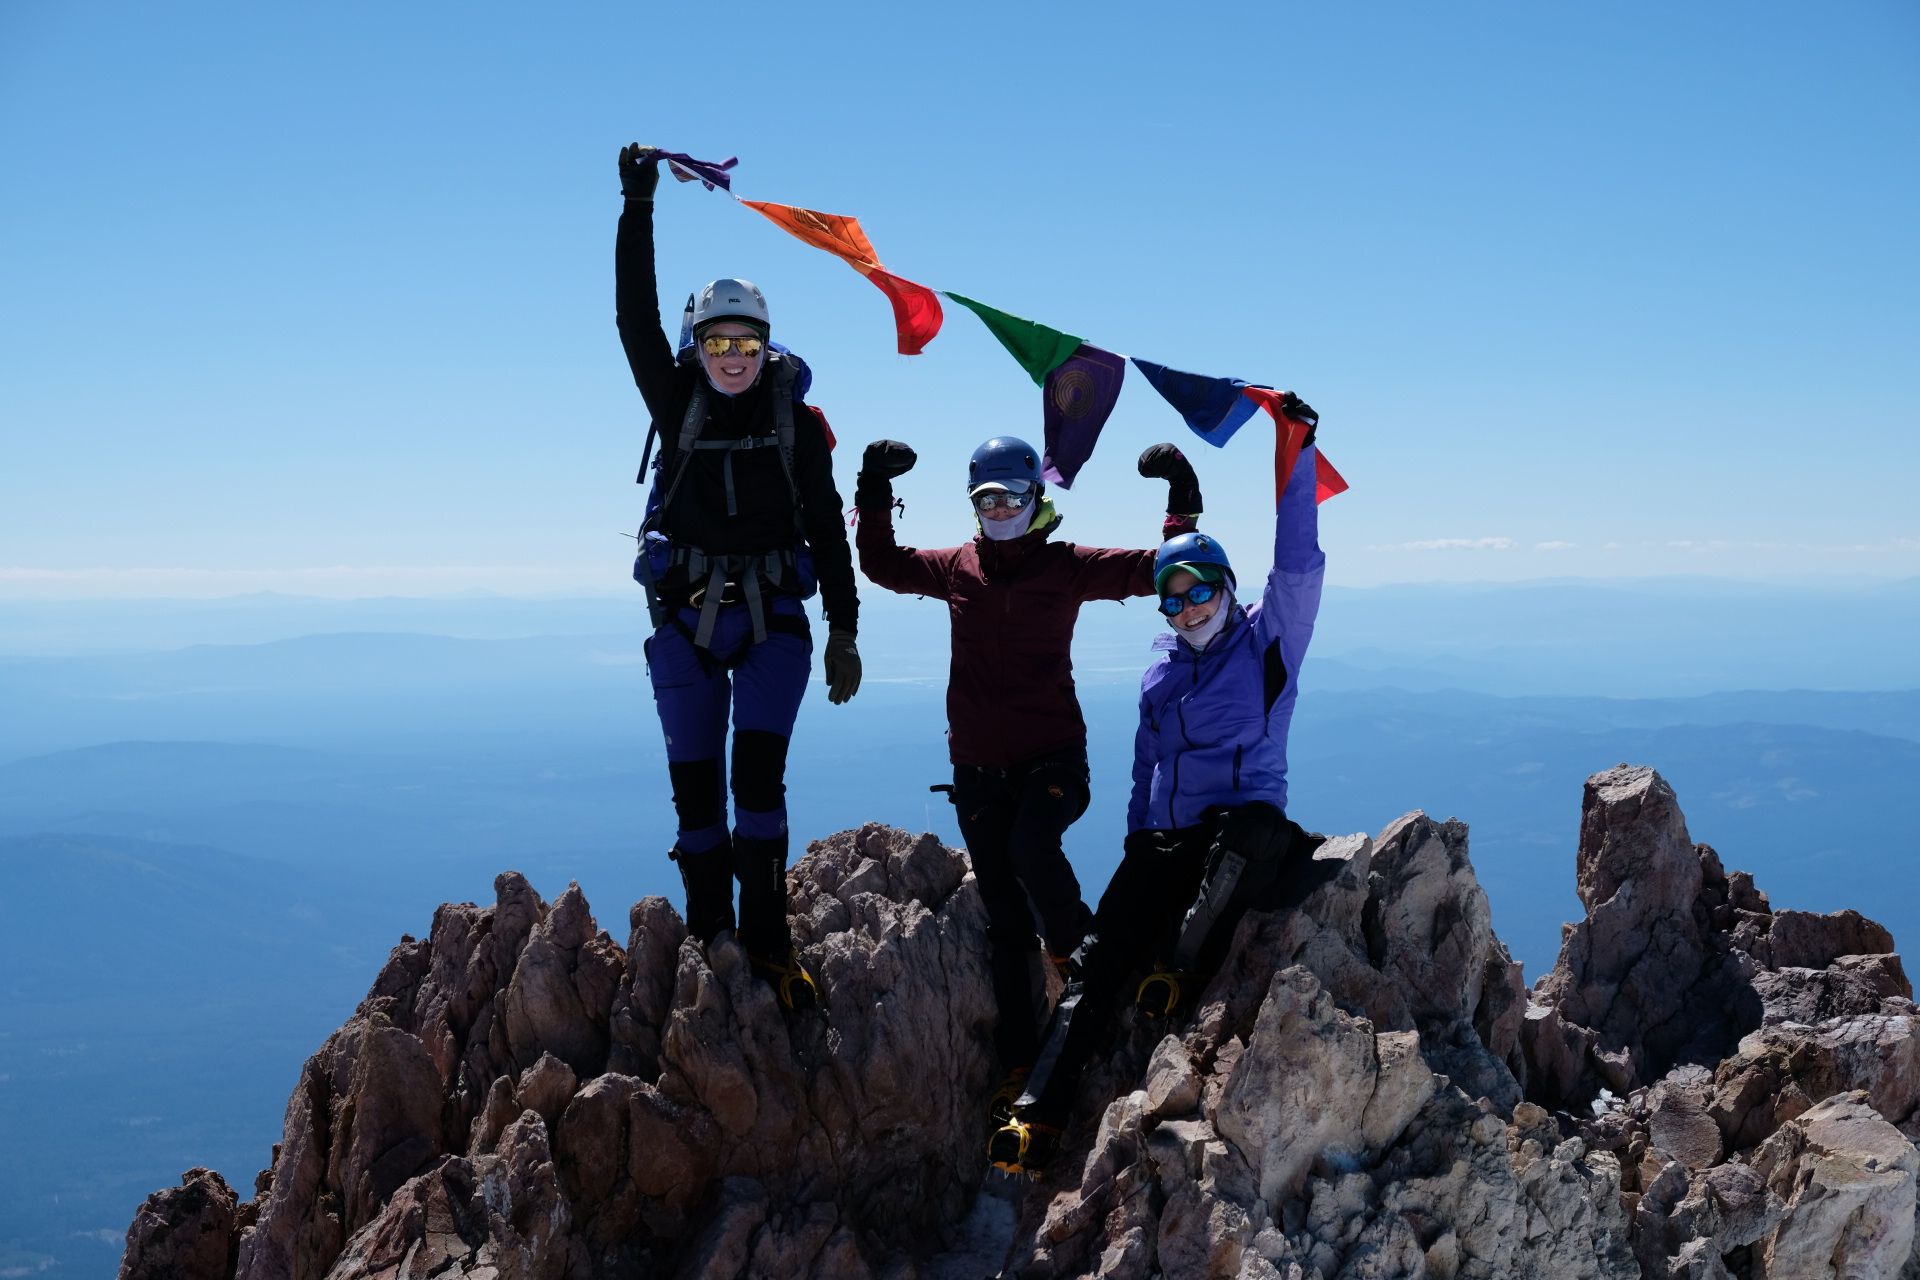 At the top of Mount Shasta, Climb Against the Odds climbers fly prayer flags in honor and memory of those affected by breast cancer and other diseases